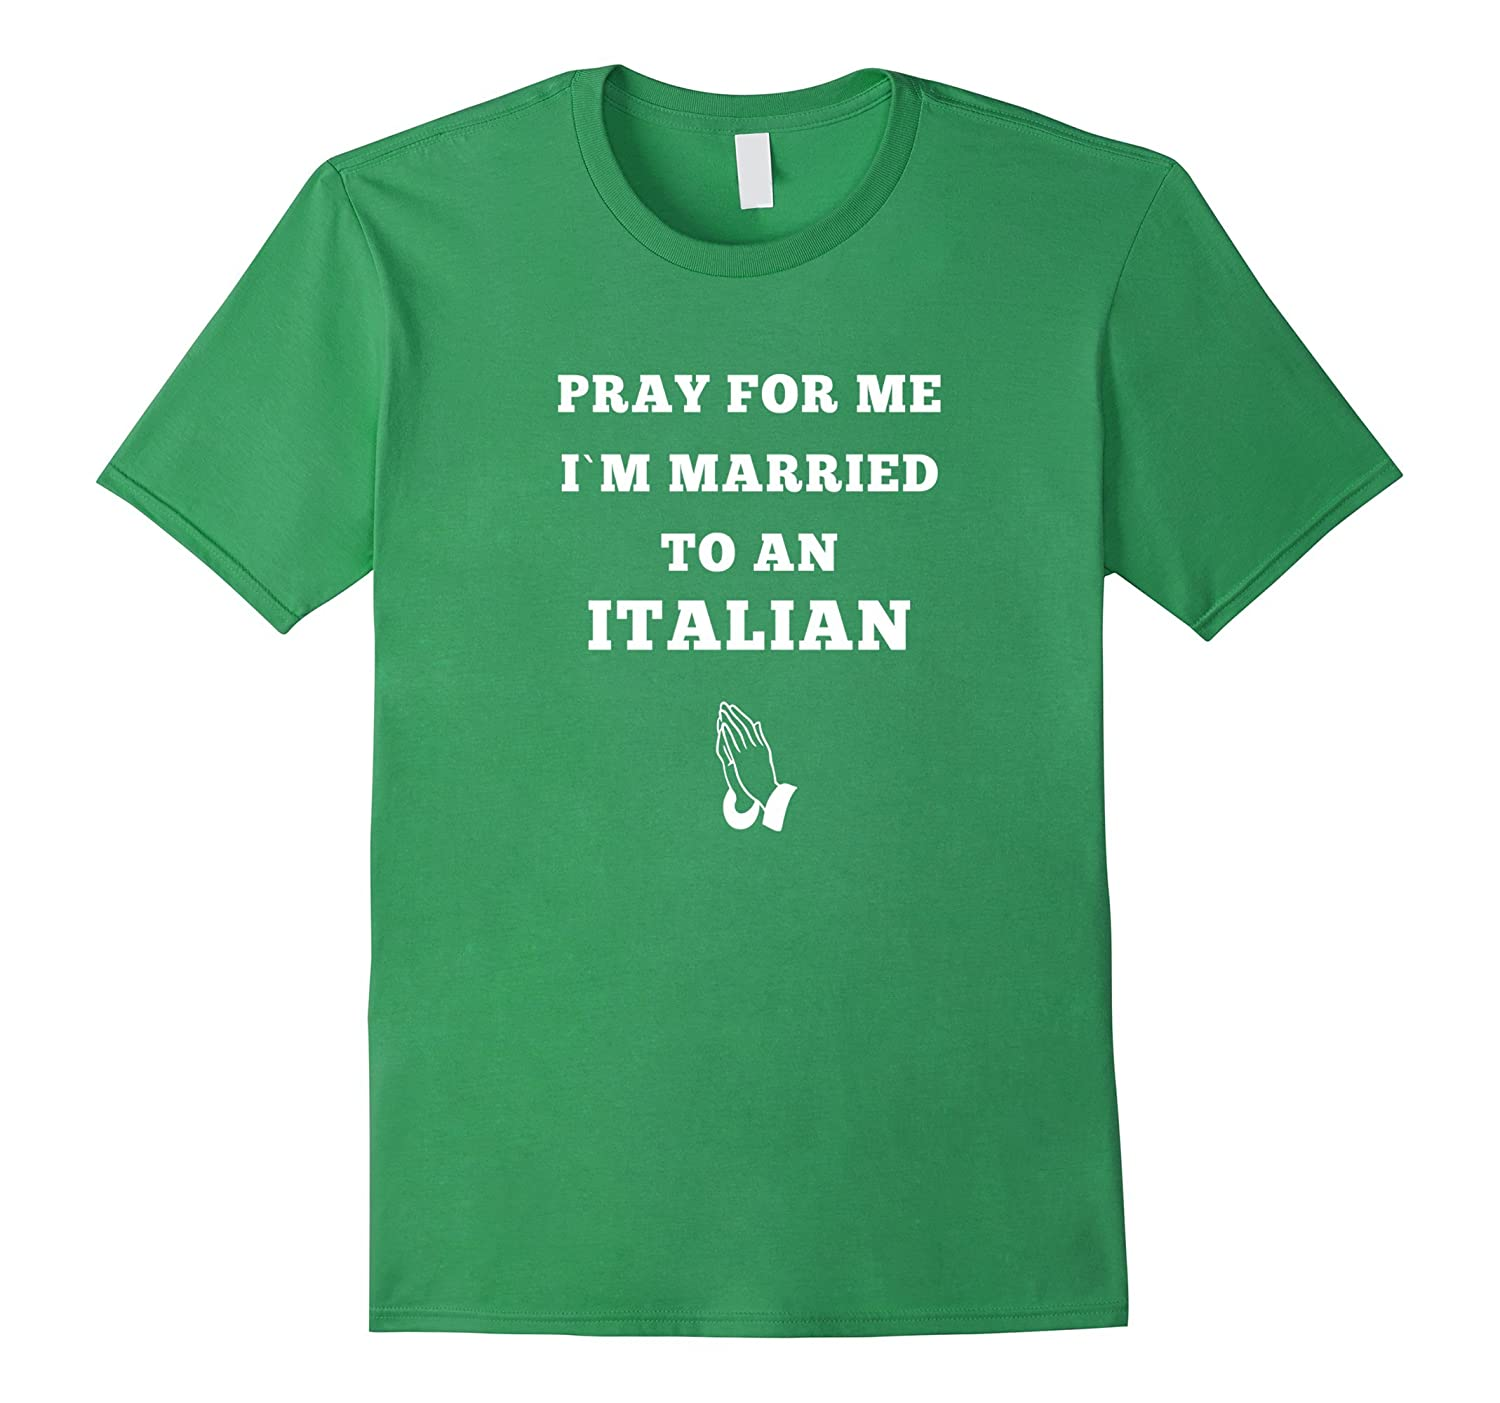 8864f3d67 Pray for me I'm married to an Italian T-shirt-BN – Banazatee